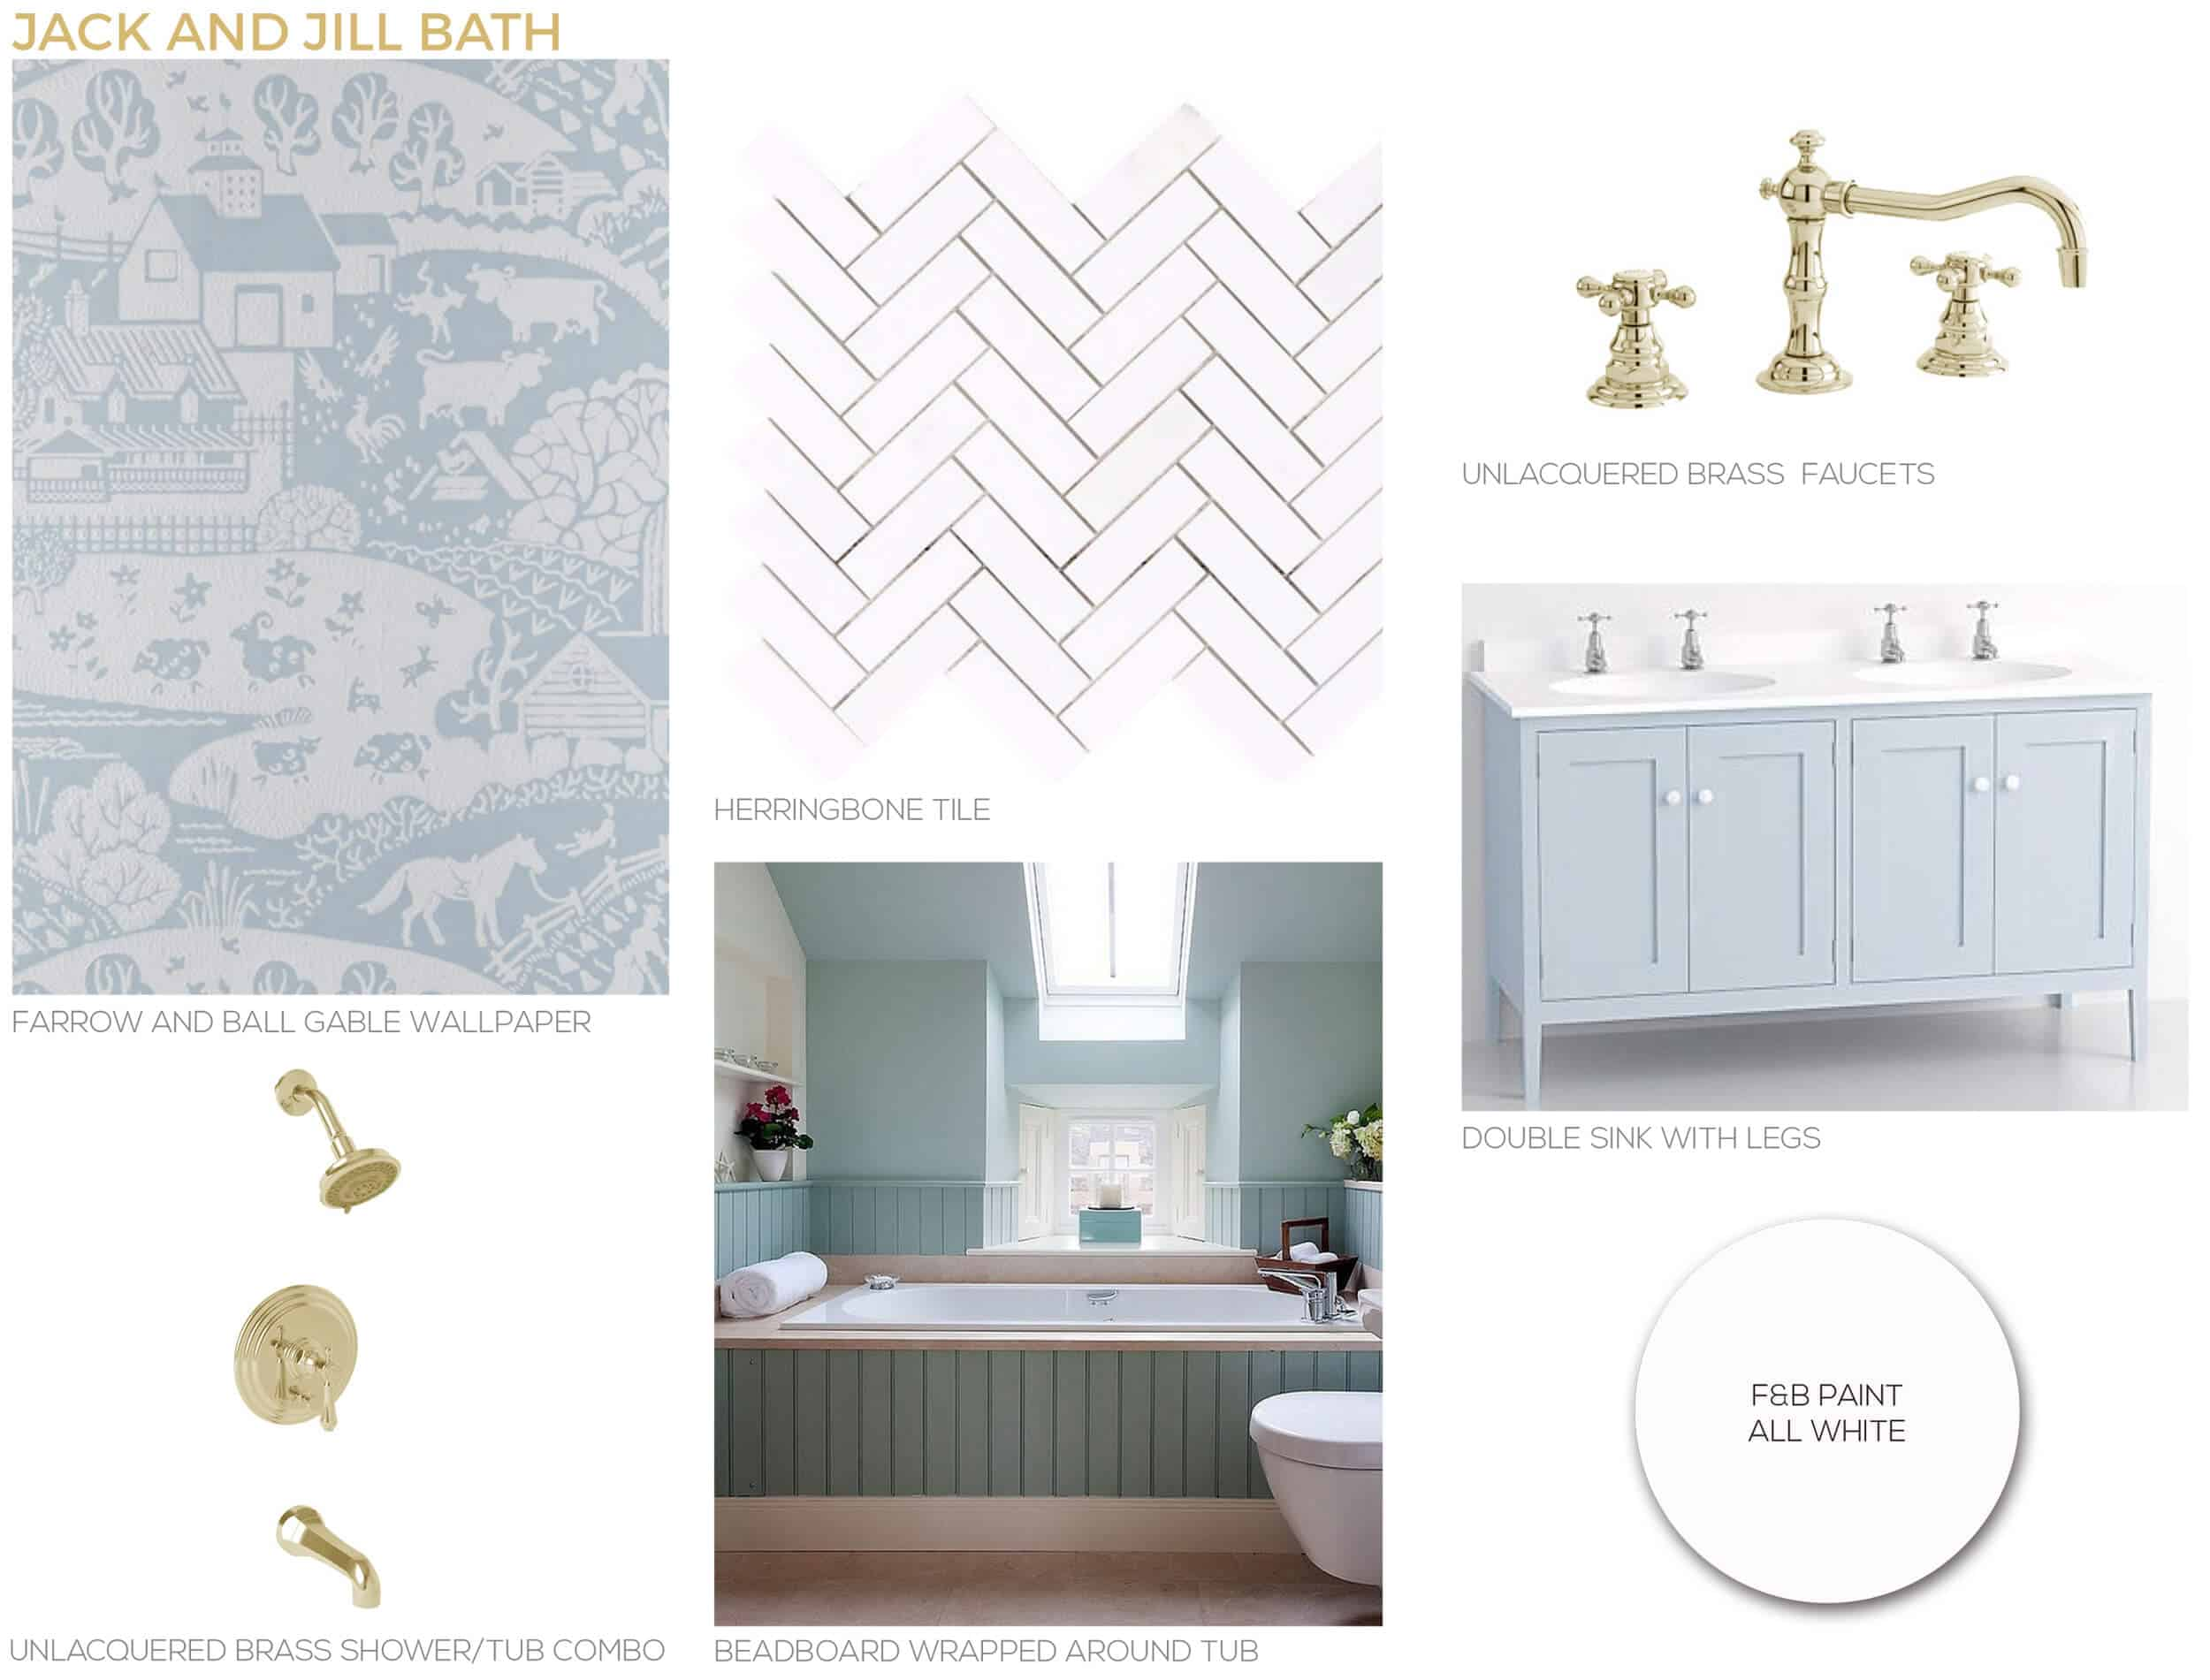 Our New Jack And Jill Bathroom Plan Get The Look Emily Henderson